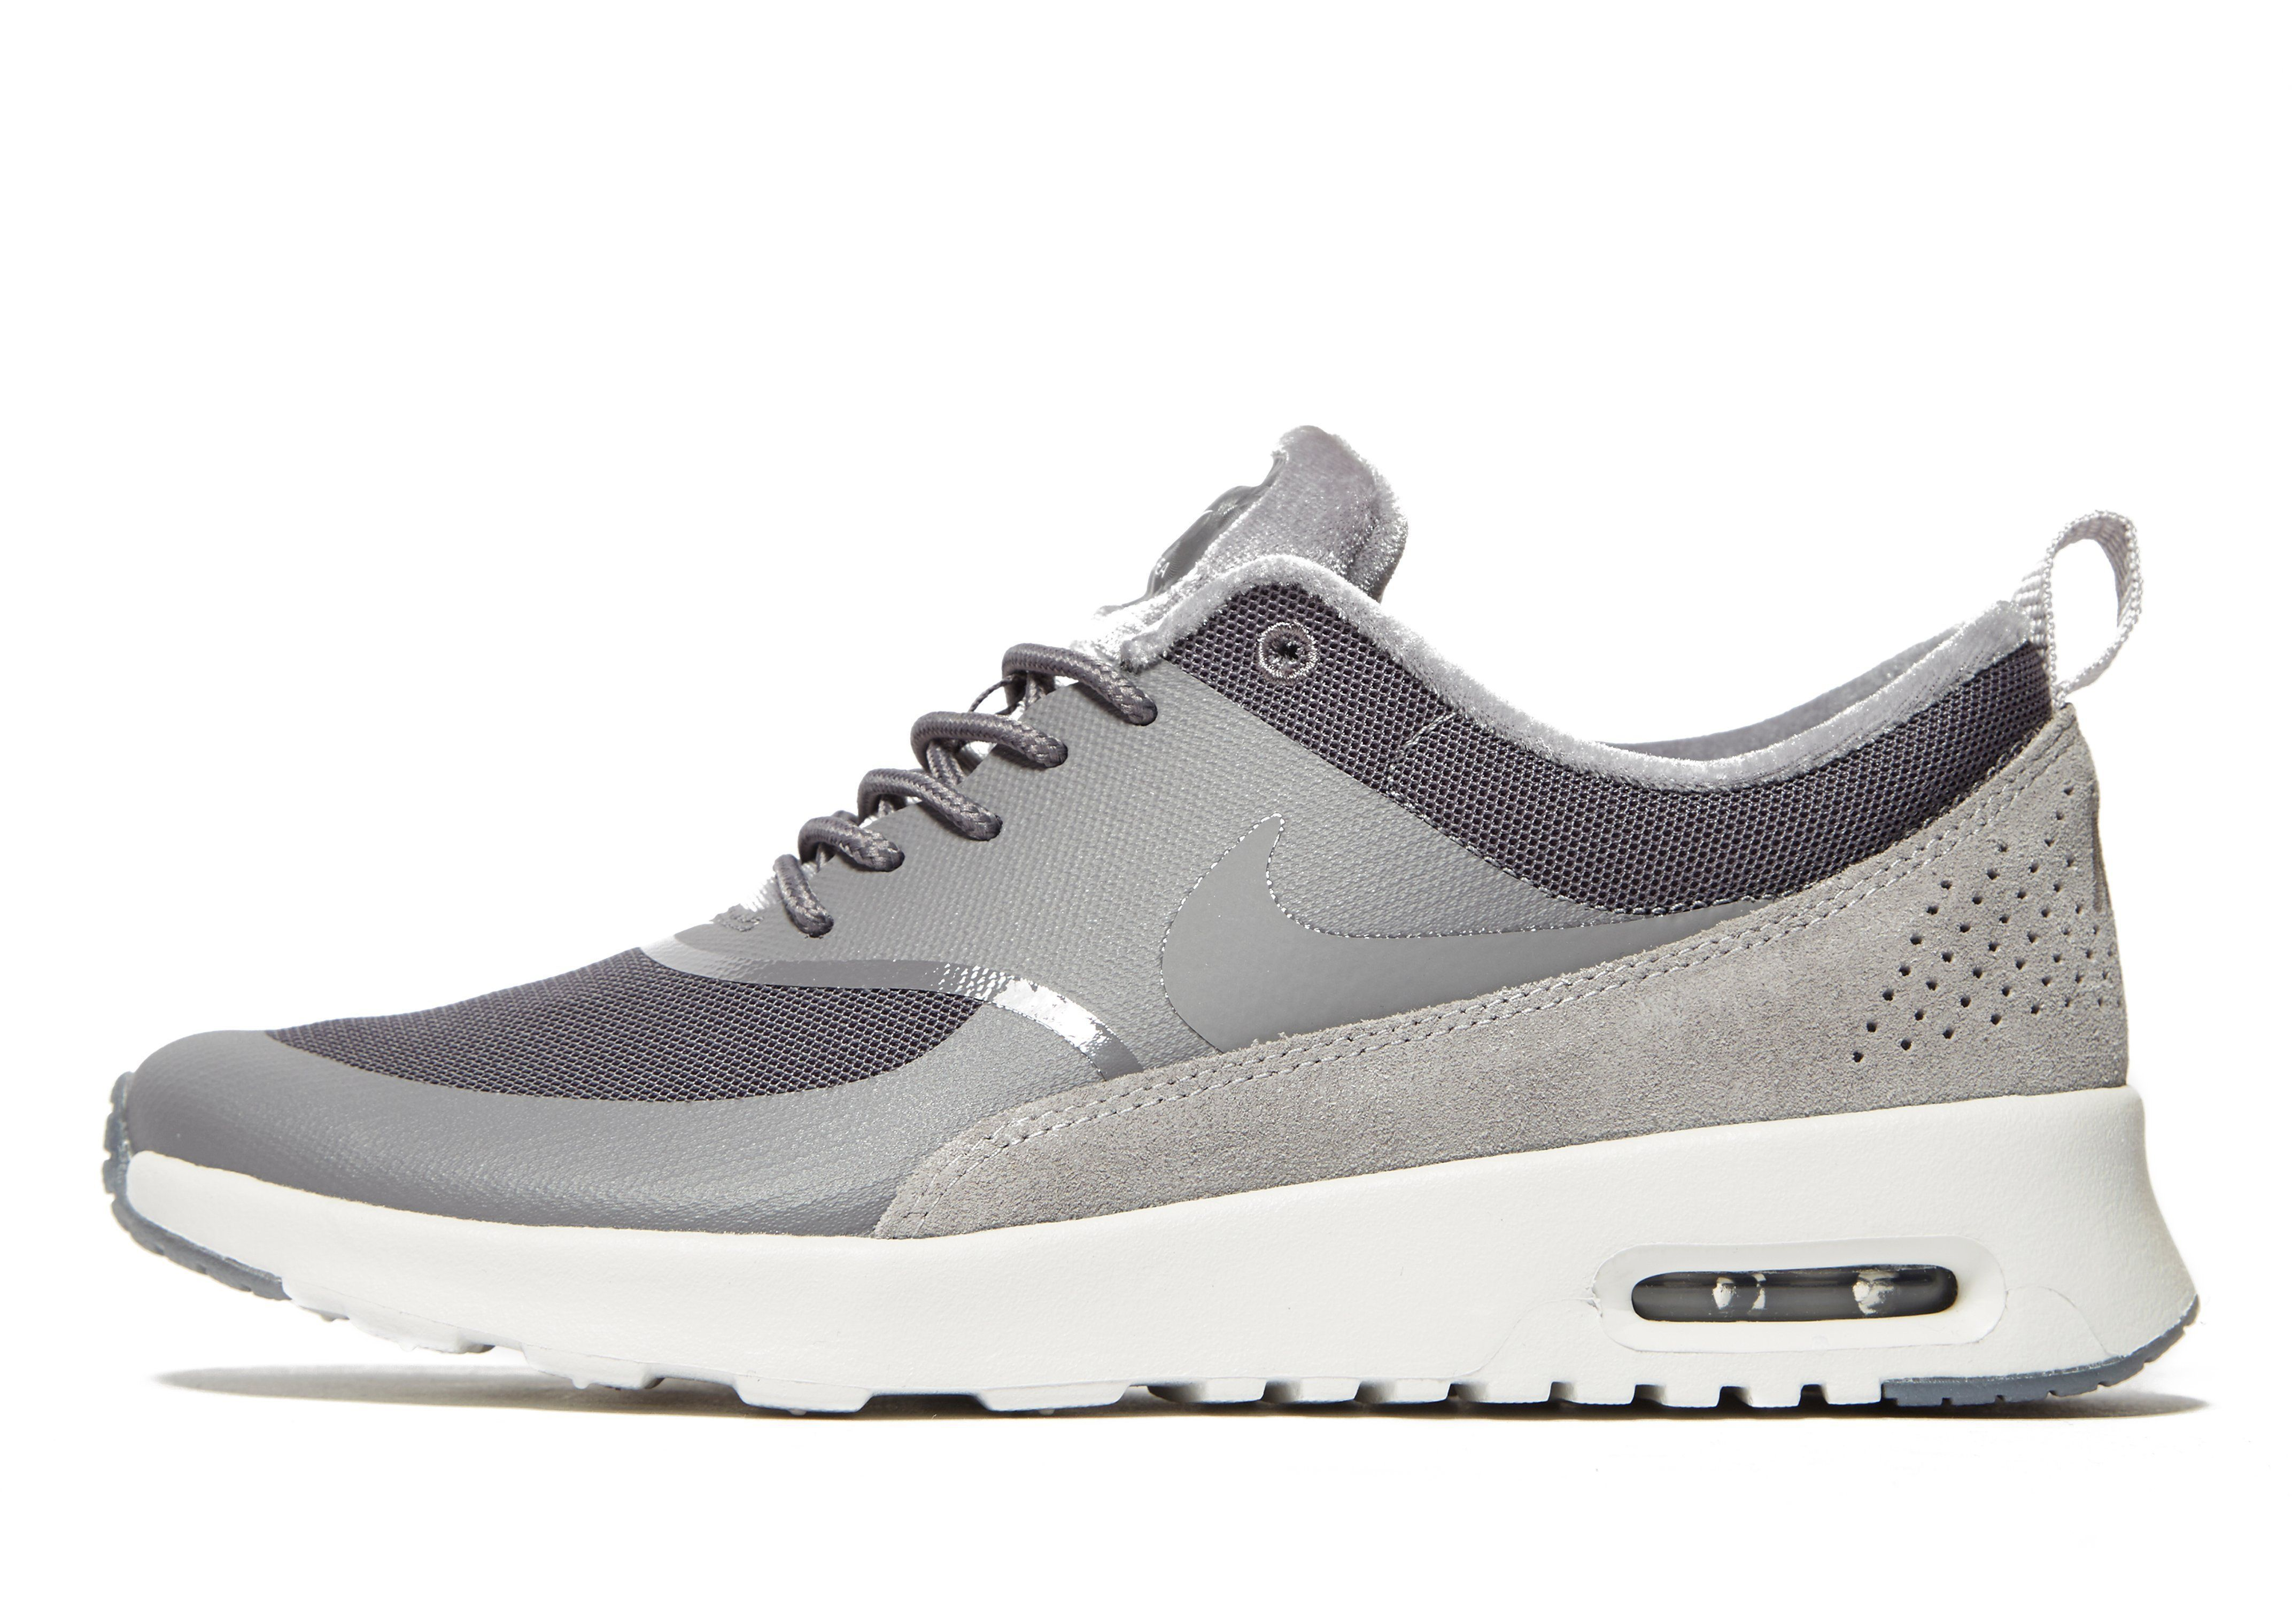 separation shoes fb00a f587c Nike Air Max Thea Womens - Shop online for Nike Air Max Thea Womens with  JD Sports, the UKs leading sports fashion retailer.